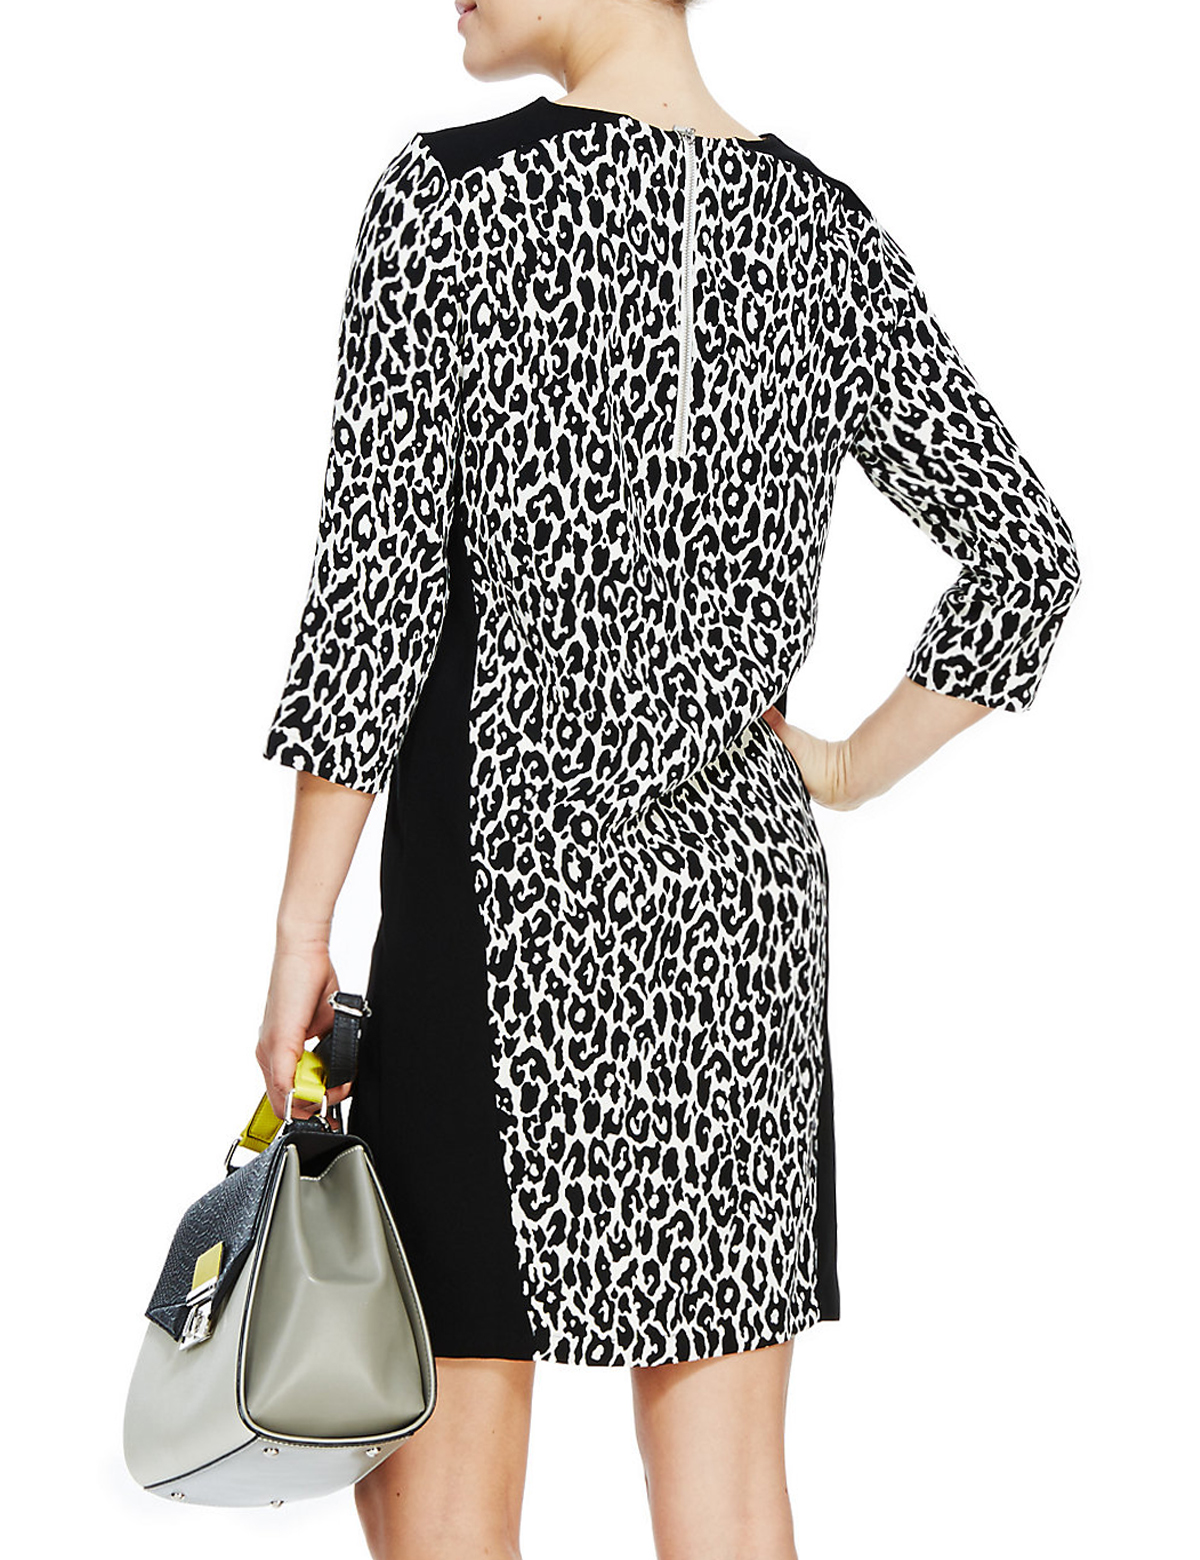 33dc6cbafbe7 Marks and Spencer - - M&5 BLACKMIX Leopard Print Insert Panelled ...